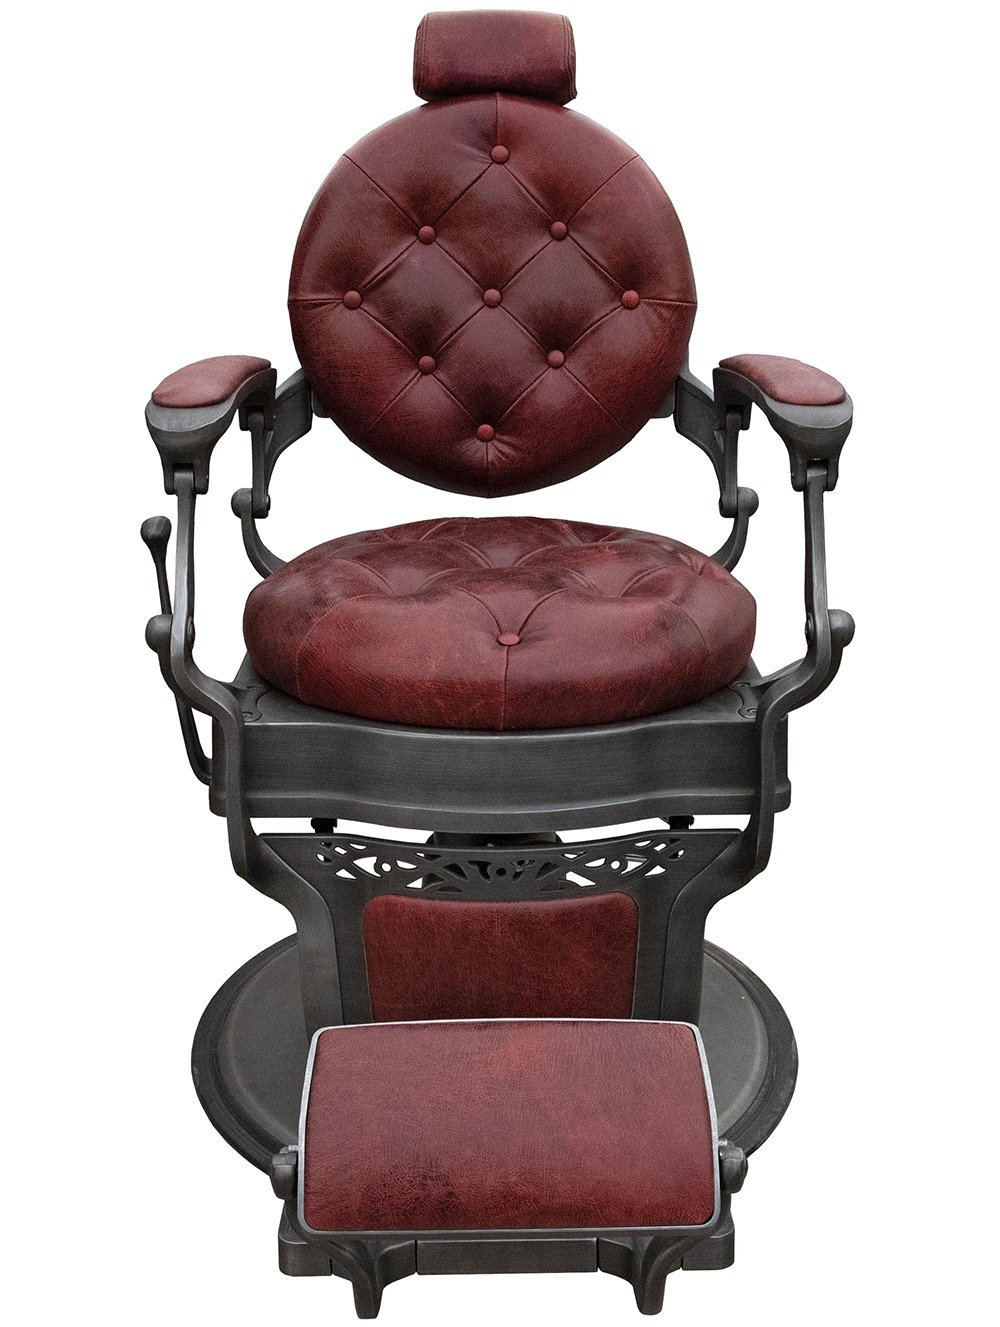 Retro Barber Chair from the front